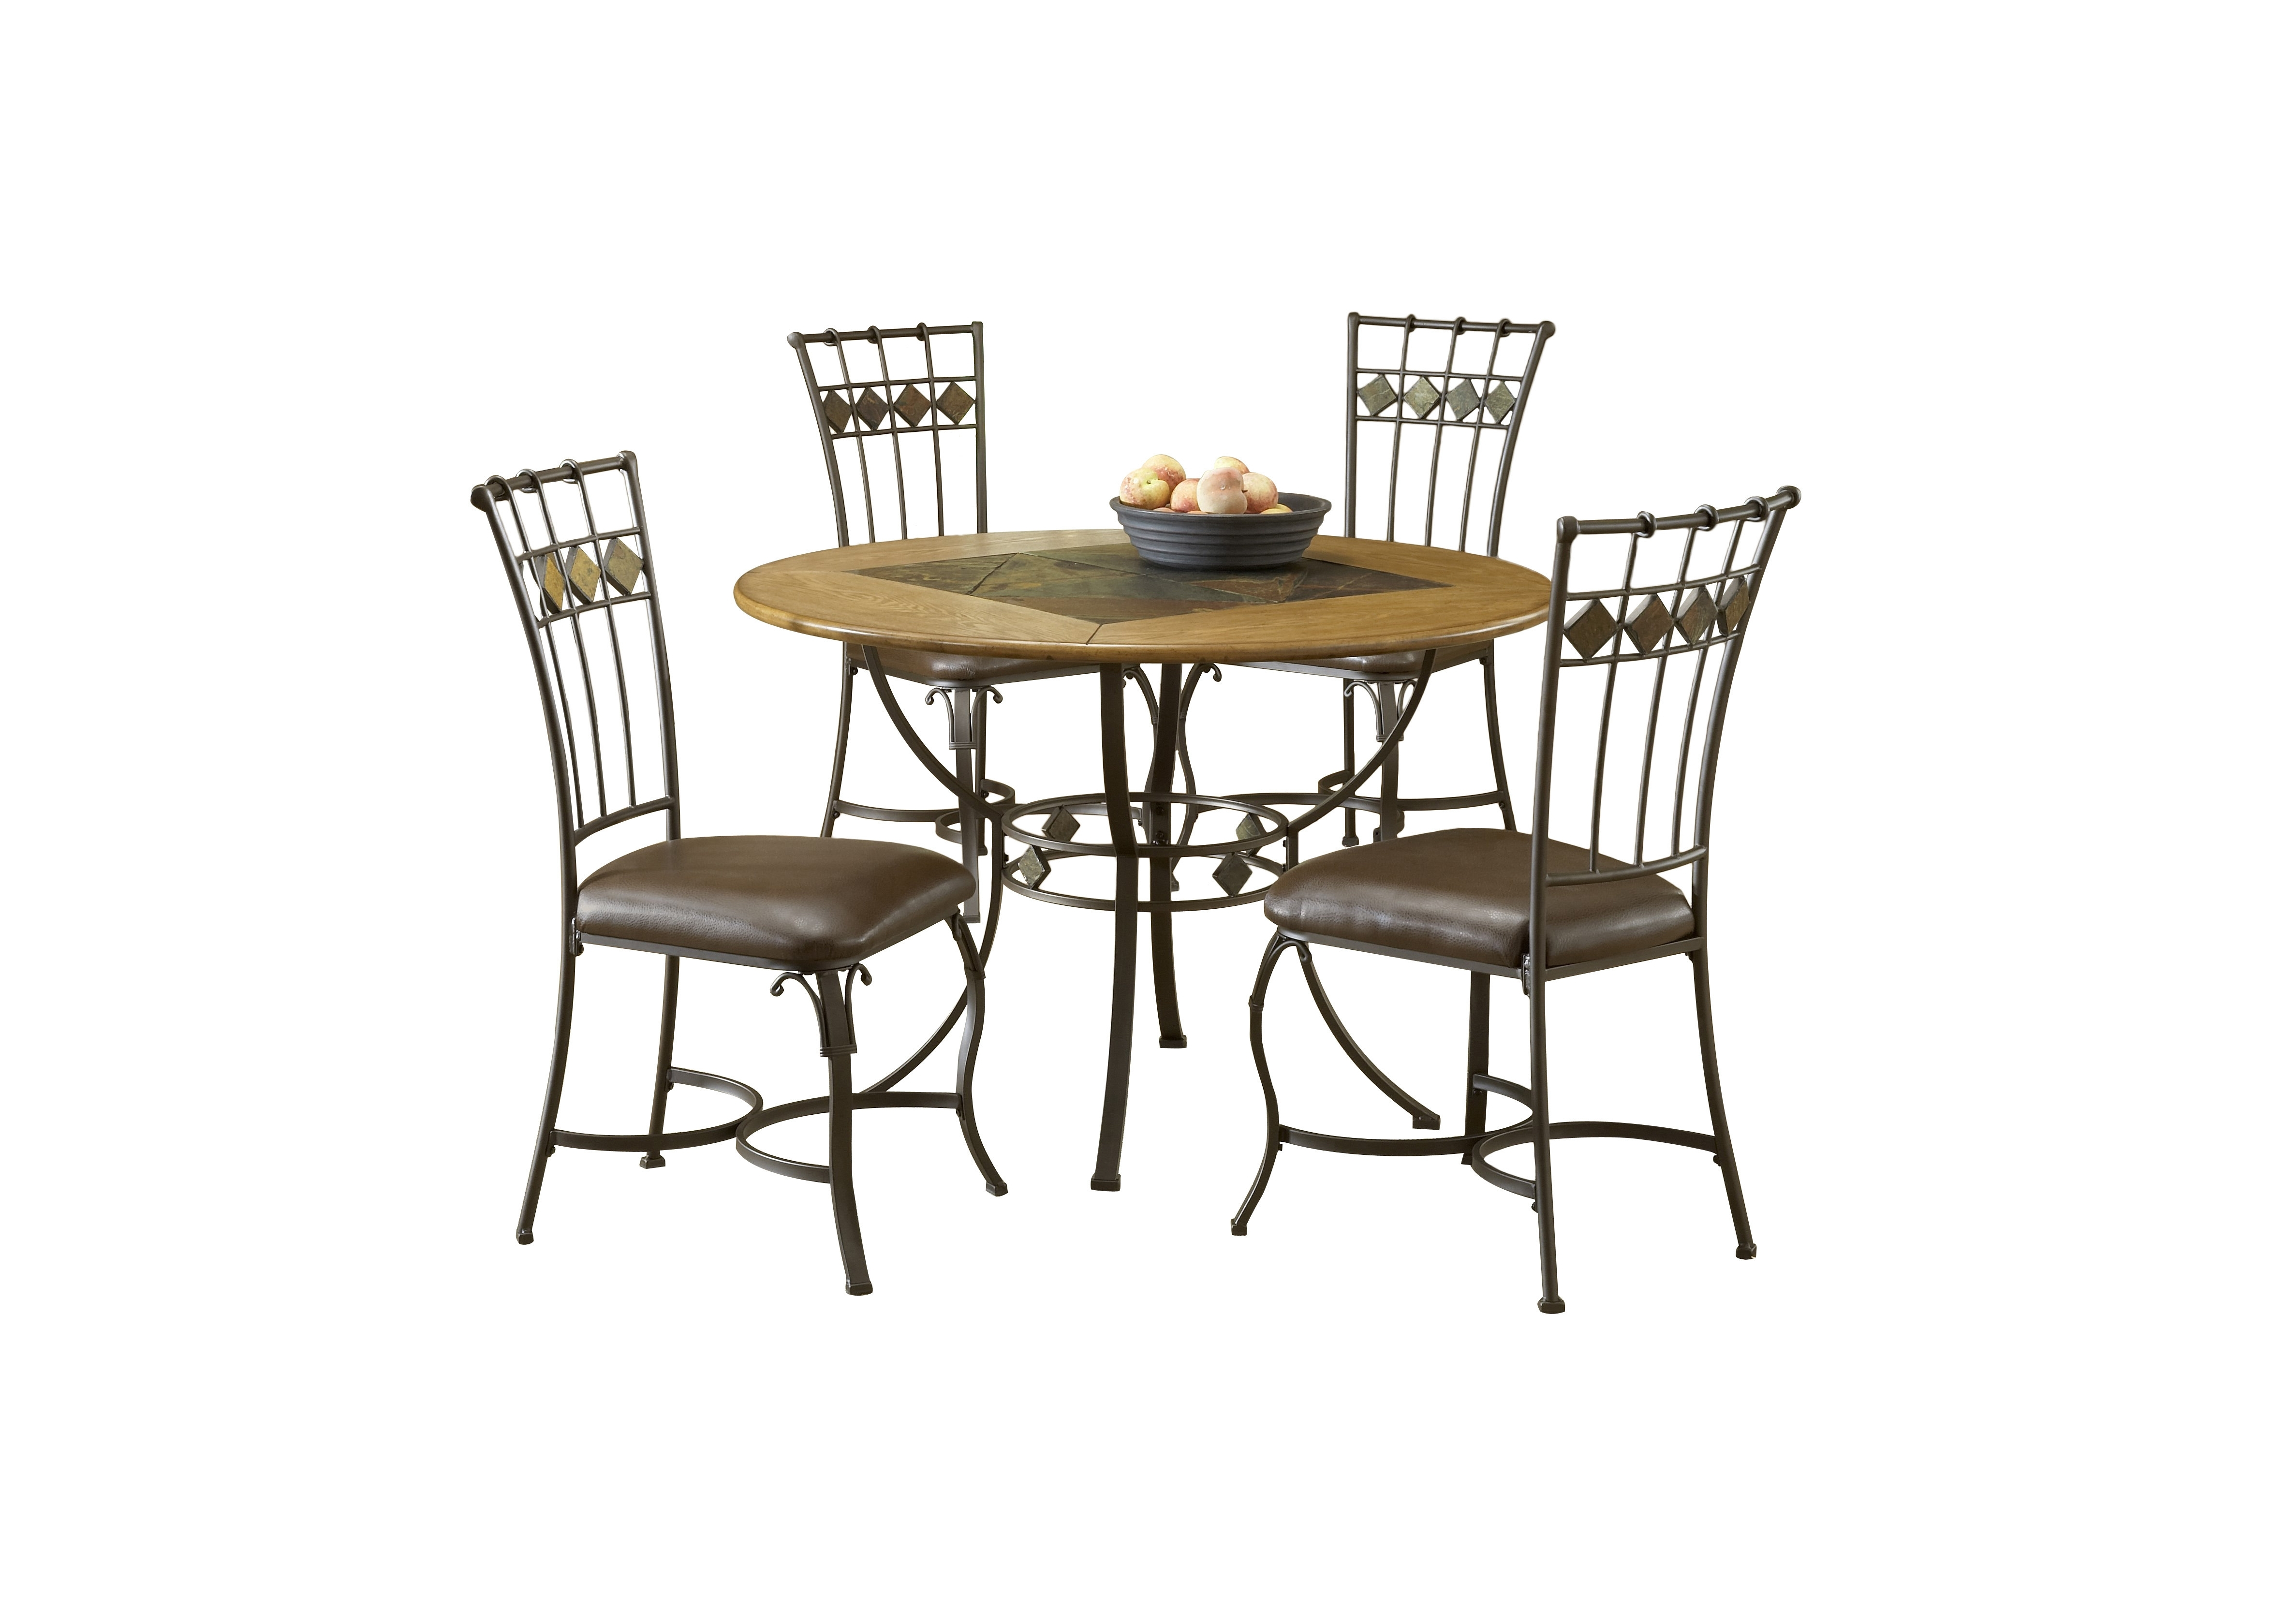 Wayfair Regarding Most Popular Candice Ii 5 Piece Round Dining Sets (View 23 of 25)